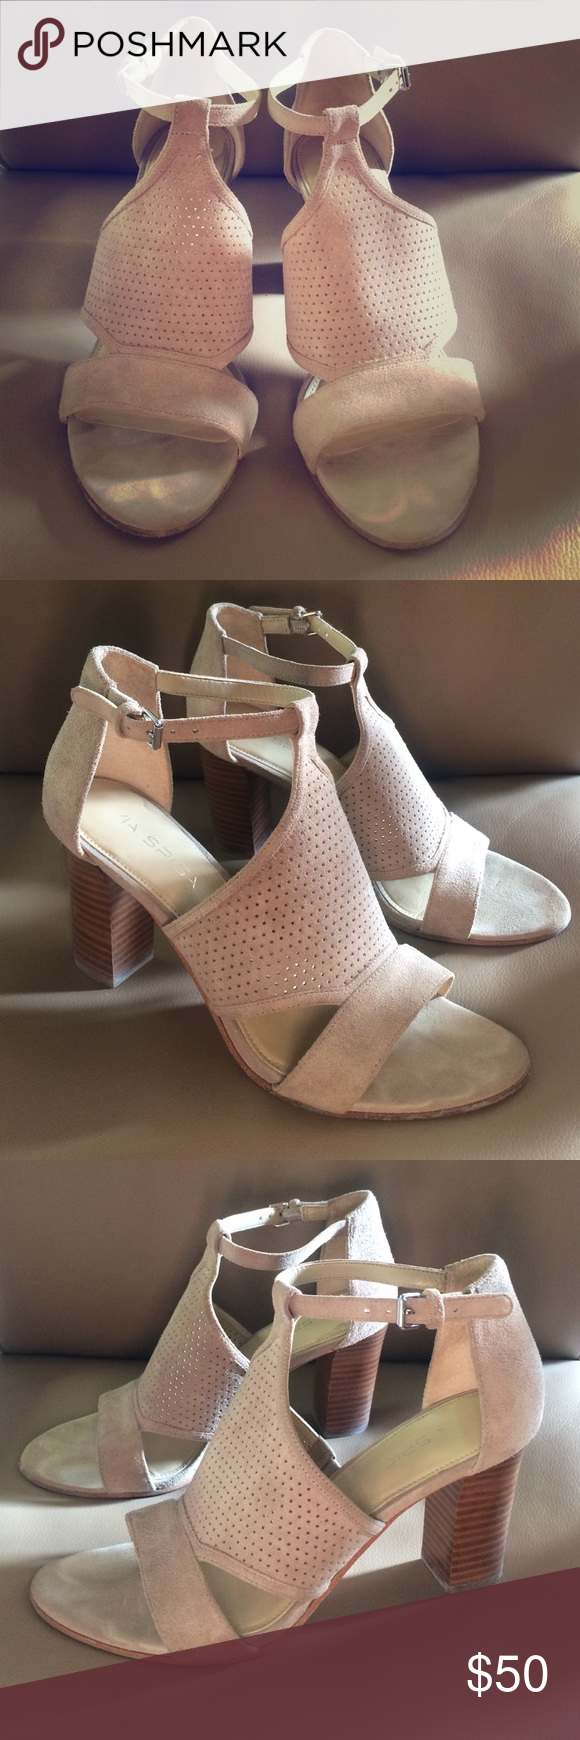 Via Spiga block heel booties/sandal Taupe block heel bootie/sandal, great used condition, worn once for a night out, just a half size too big for me, great neutral colored shoe! Via Spiga Shoes